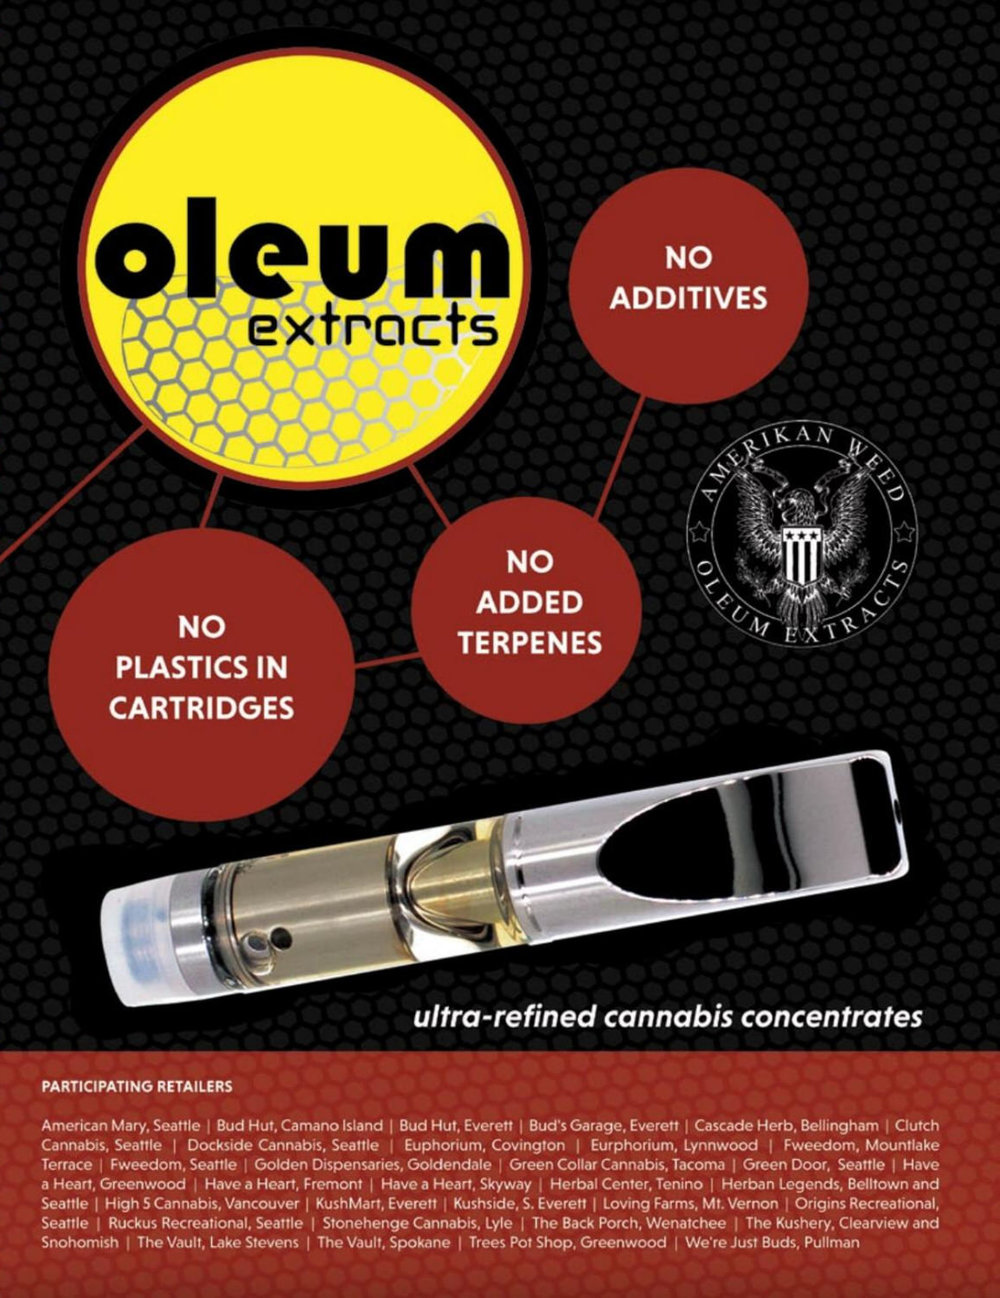 Oleum Extracts Product Photography